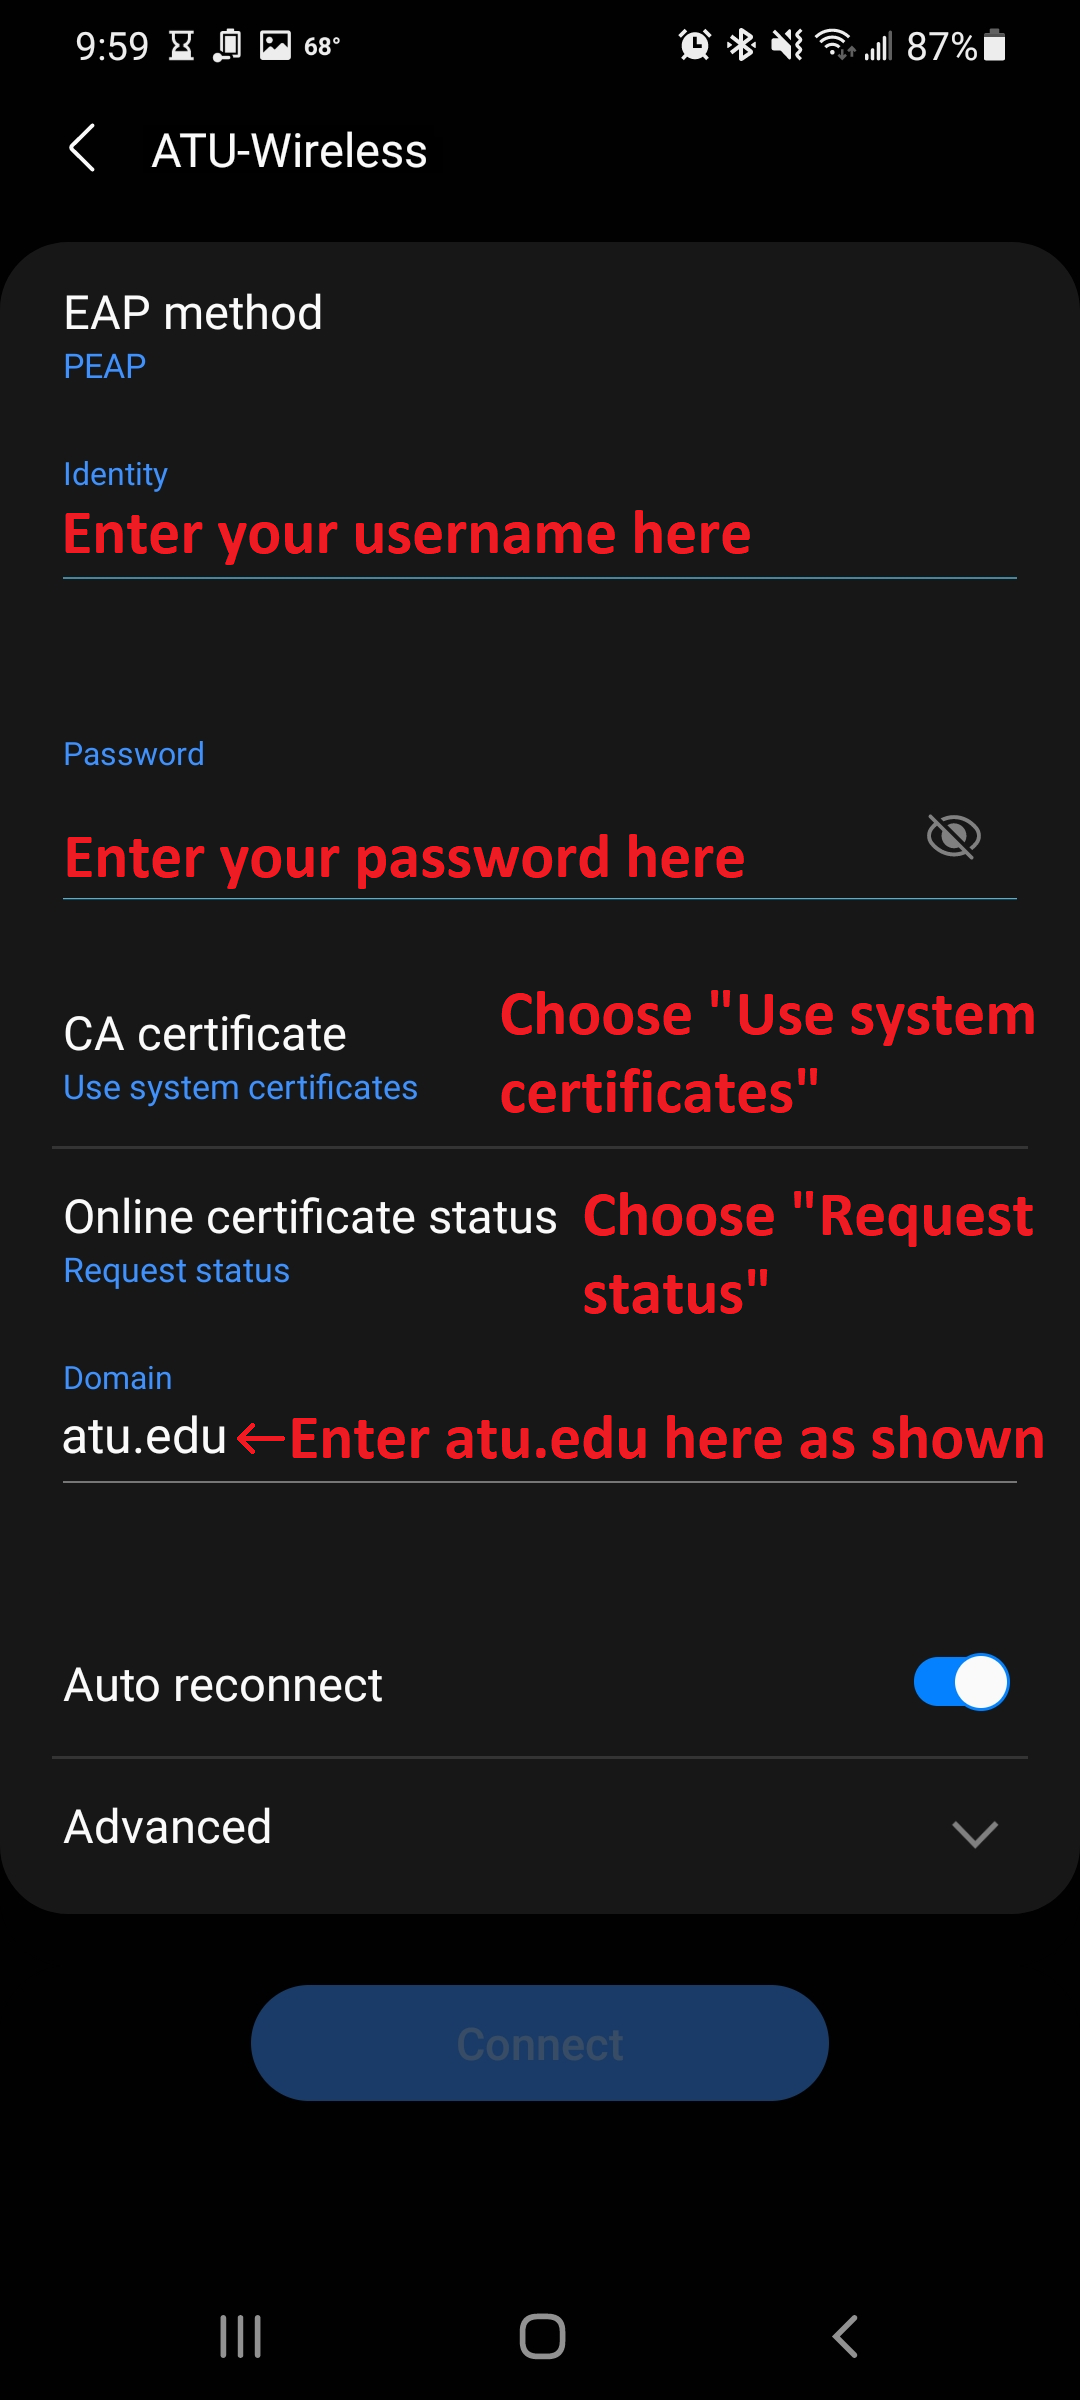 Security settings for a wireless network with labels where information needs to be added or changed